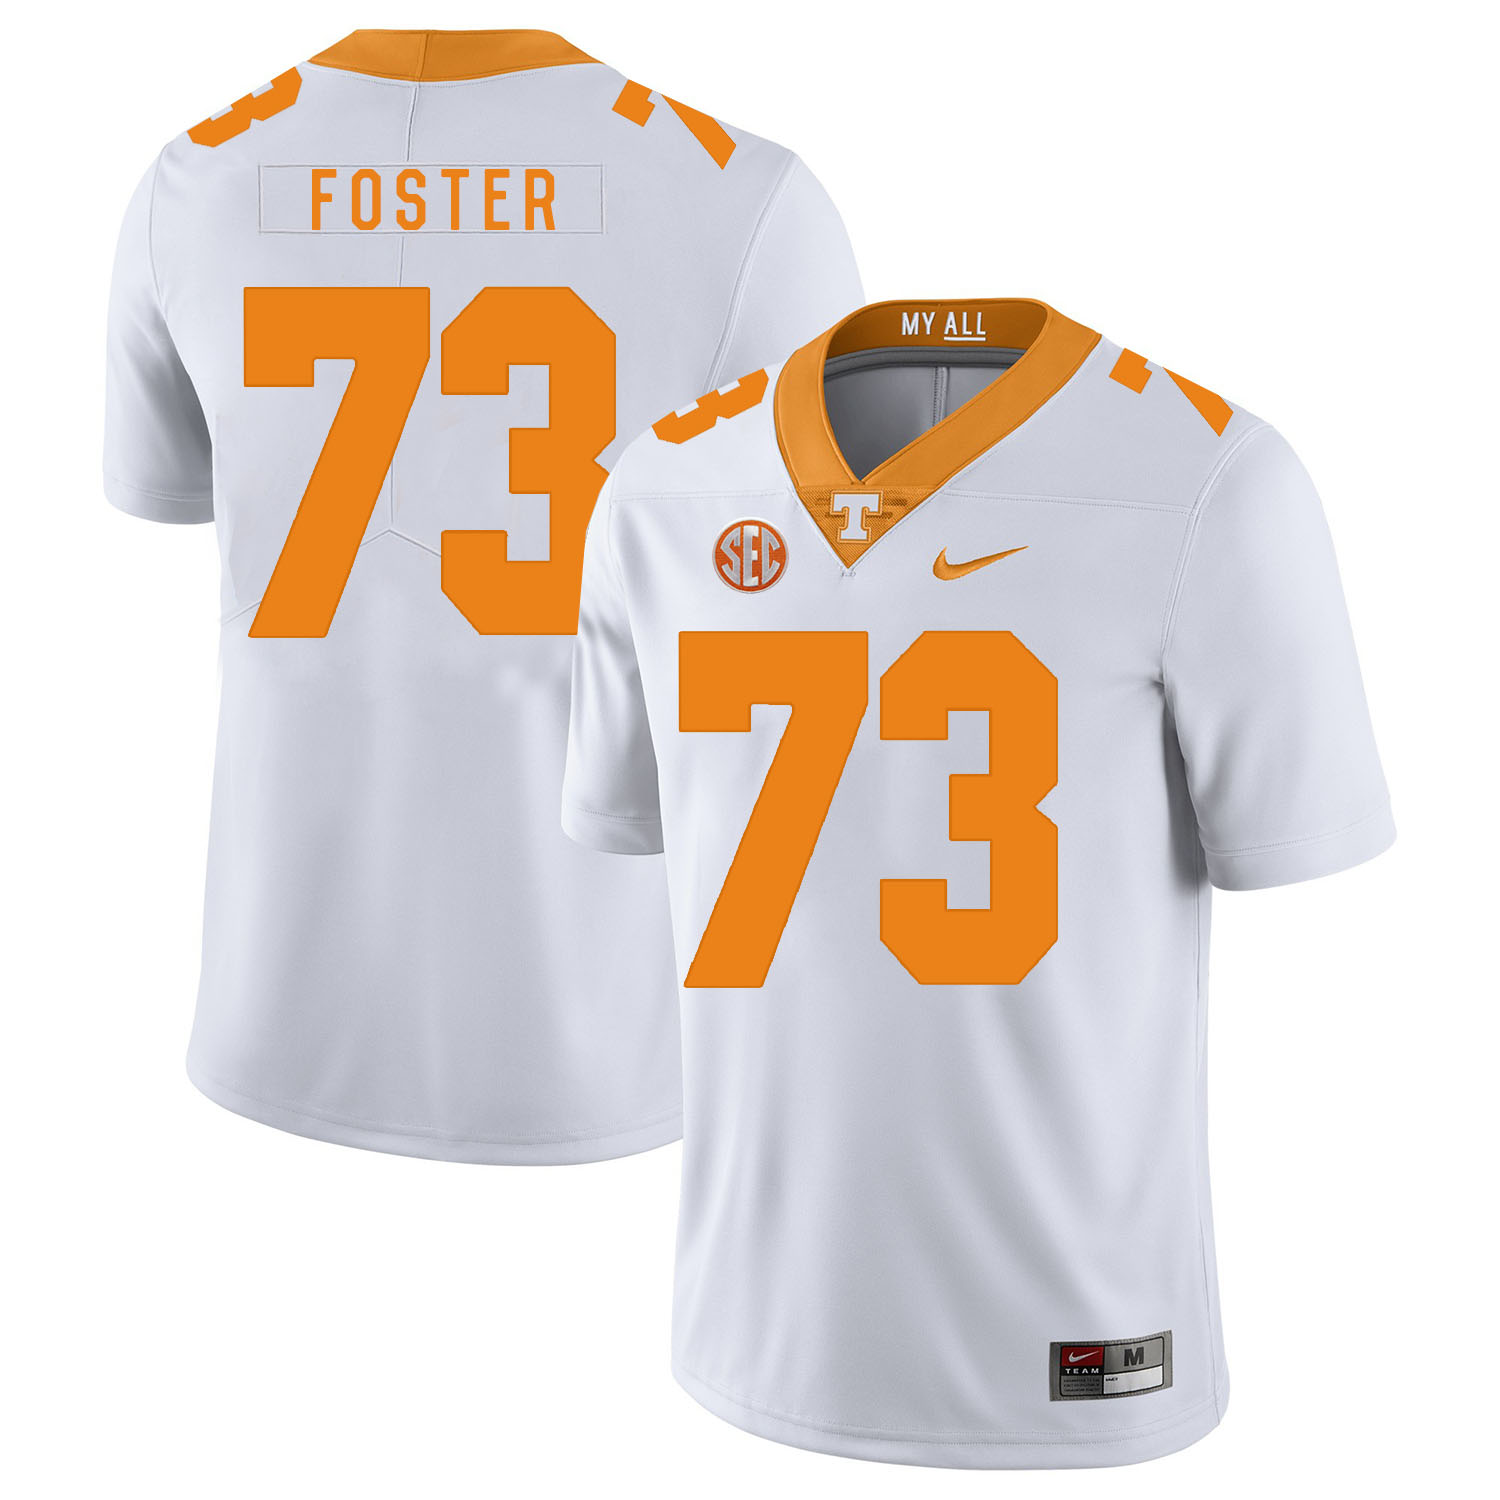 Tennessee Volunteers 73 Ramon Foster White Nike College Football Jersey